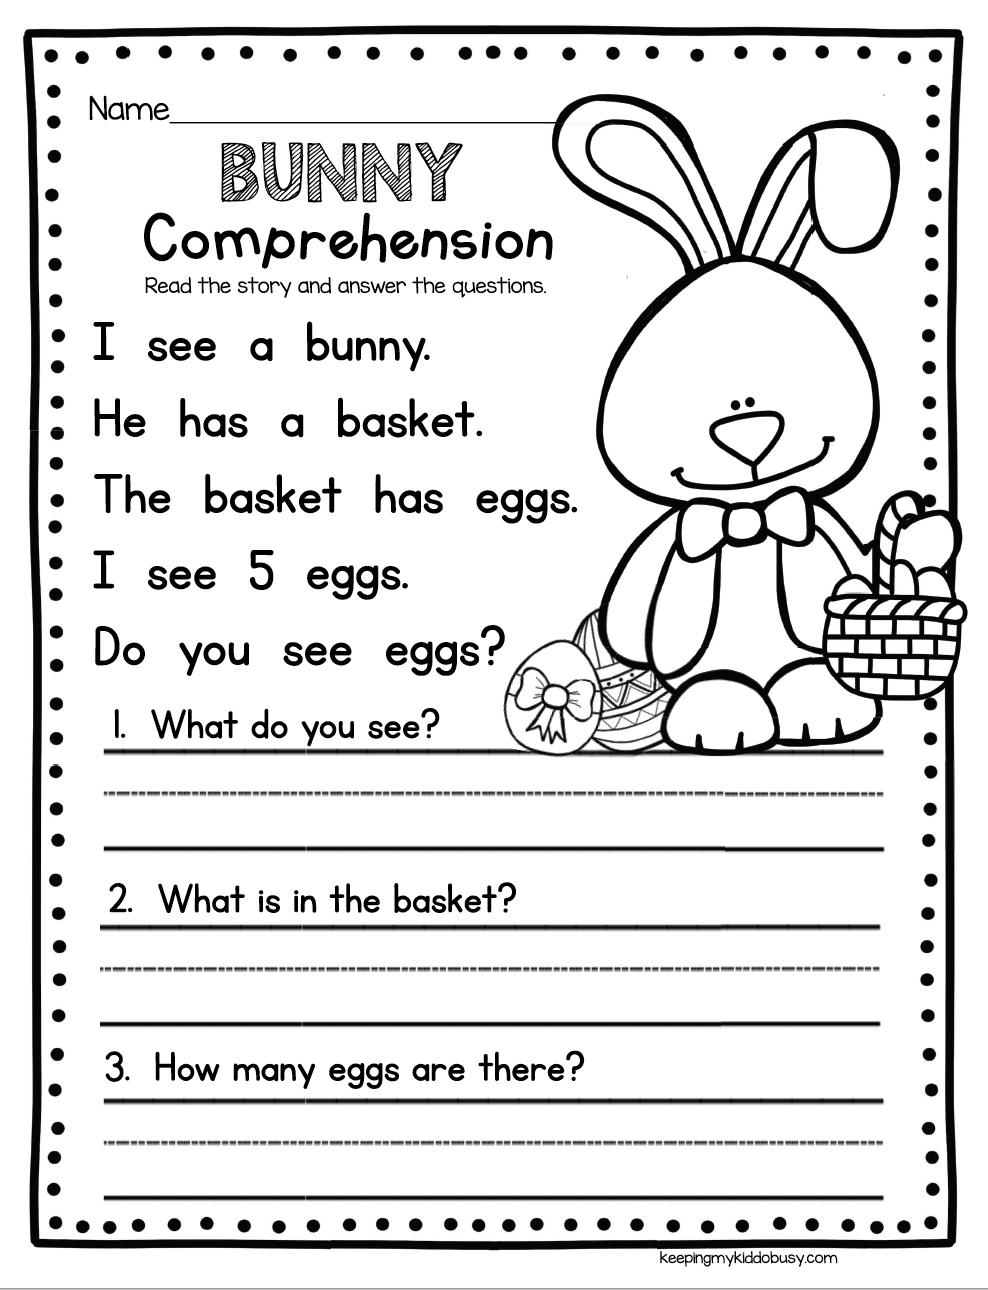 Kindergarten Easy Worksheets : Easter reading worksheets for kindergarten kidz activities